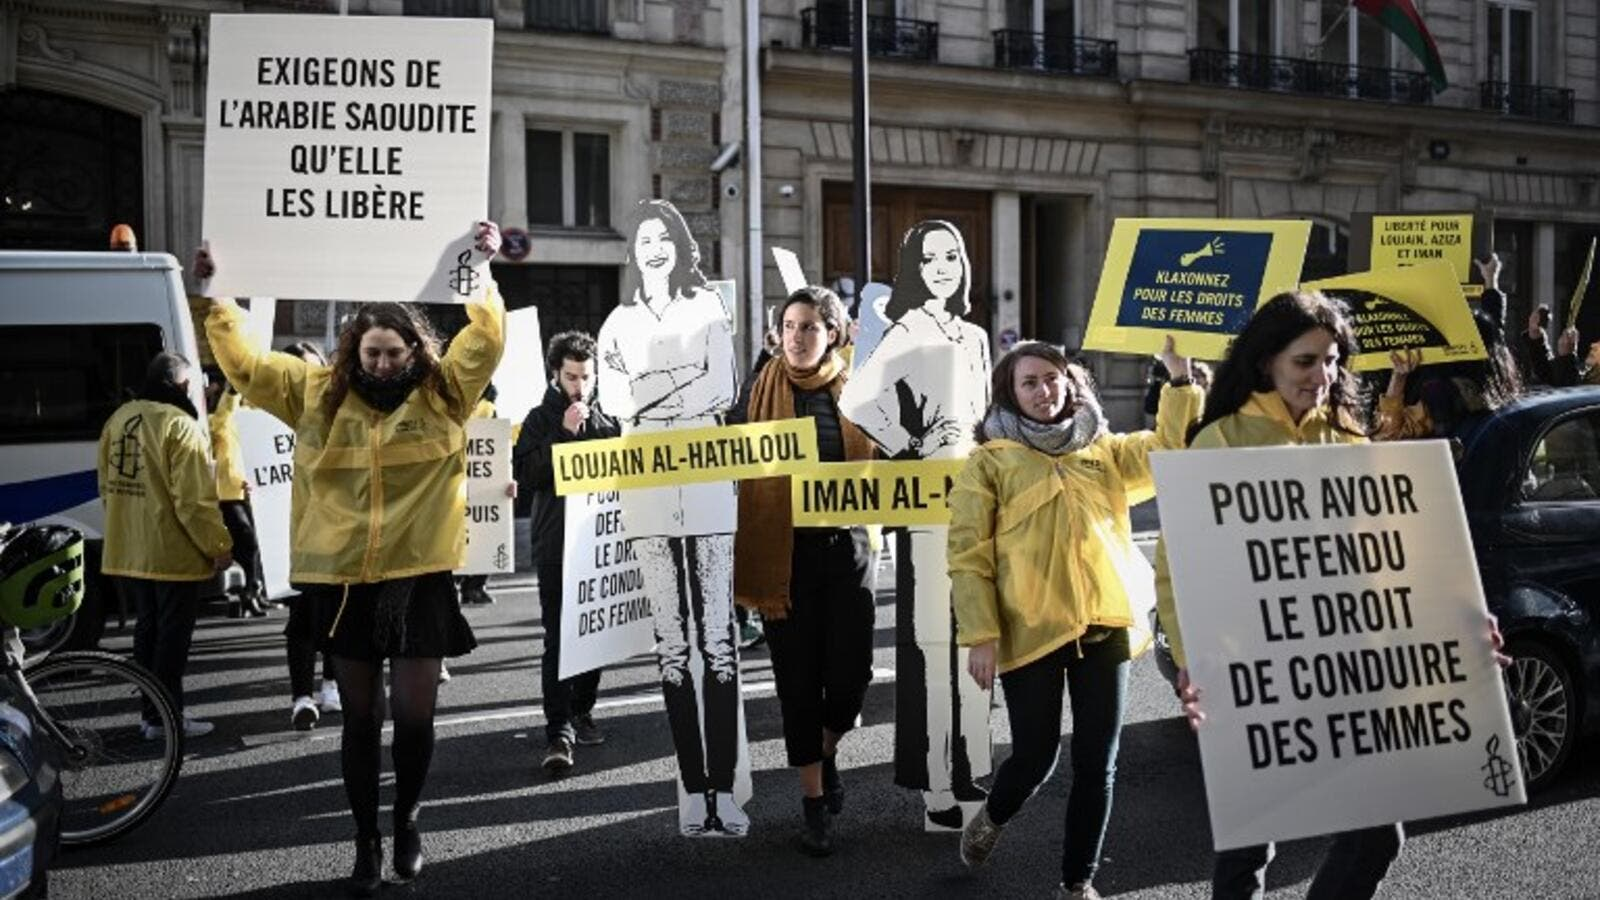 Women's rights activists hold signs as they take part in a demonstration organized by Amnesty International outside the Saudi Arabia embassy in Paris, on March 8, 2019 during International Women's Day. (AFP)